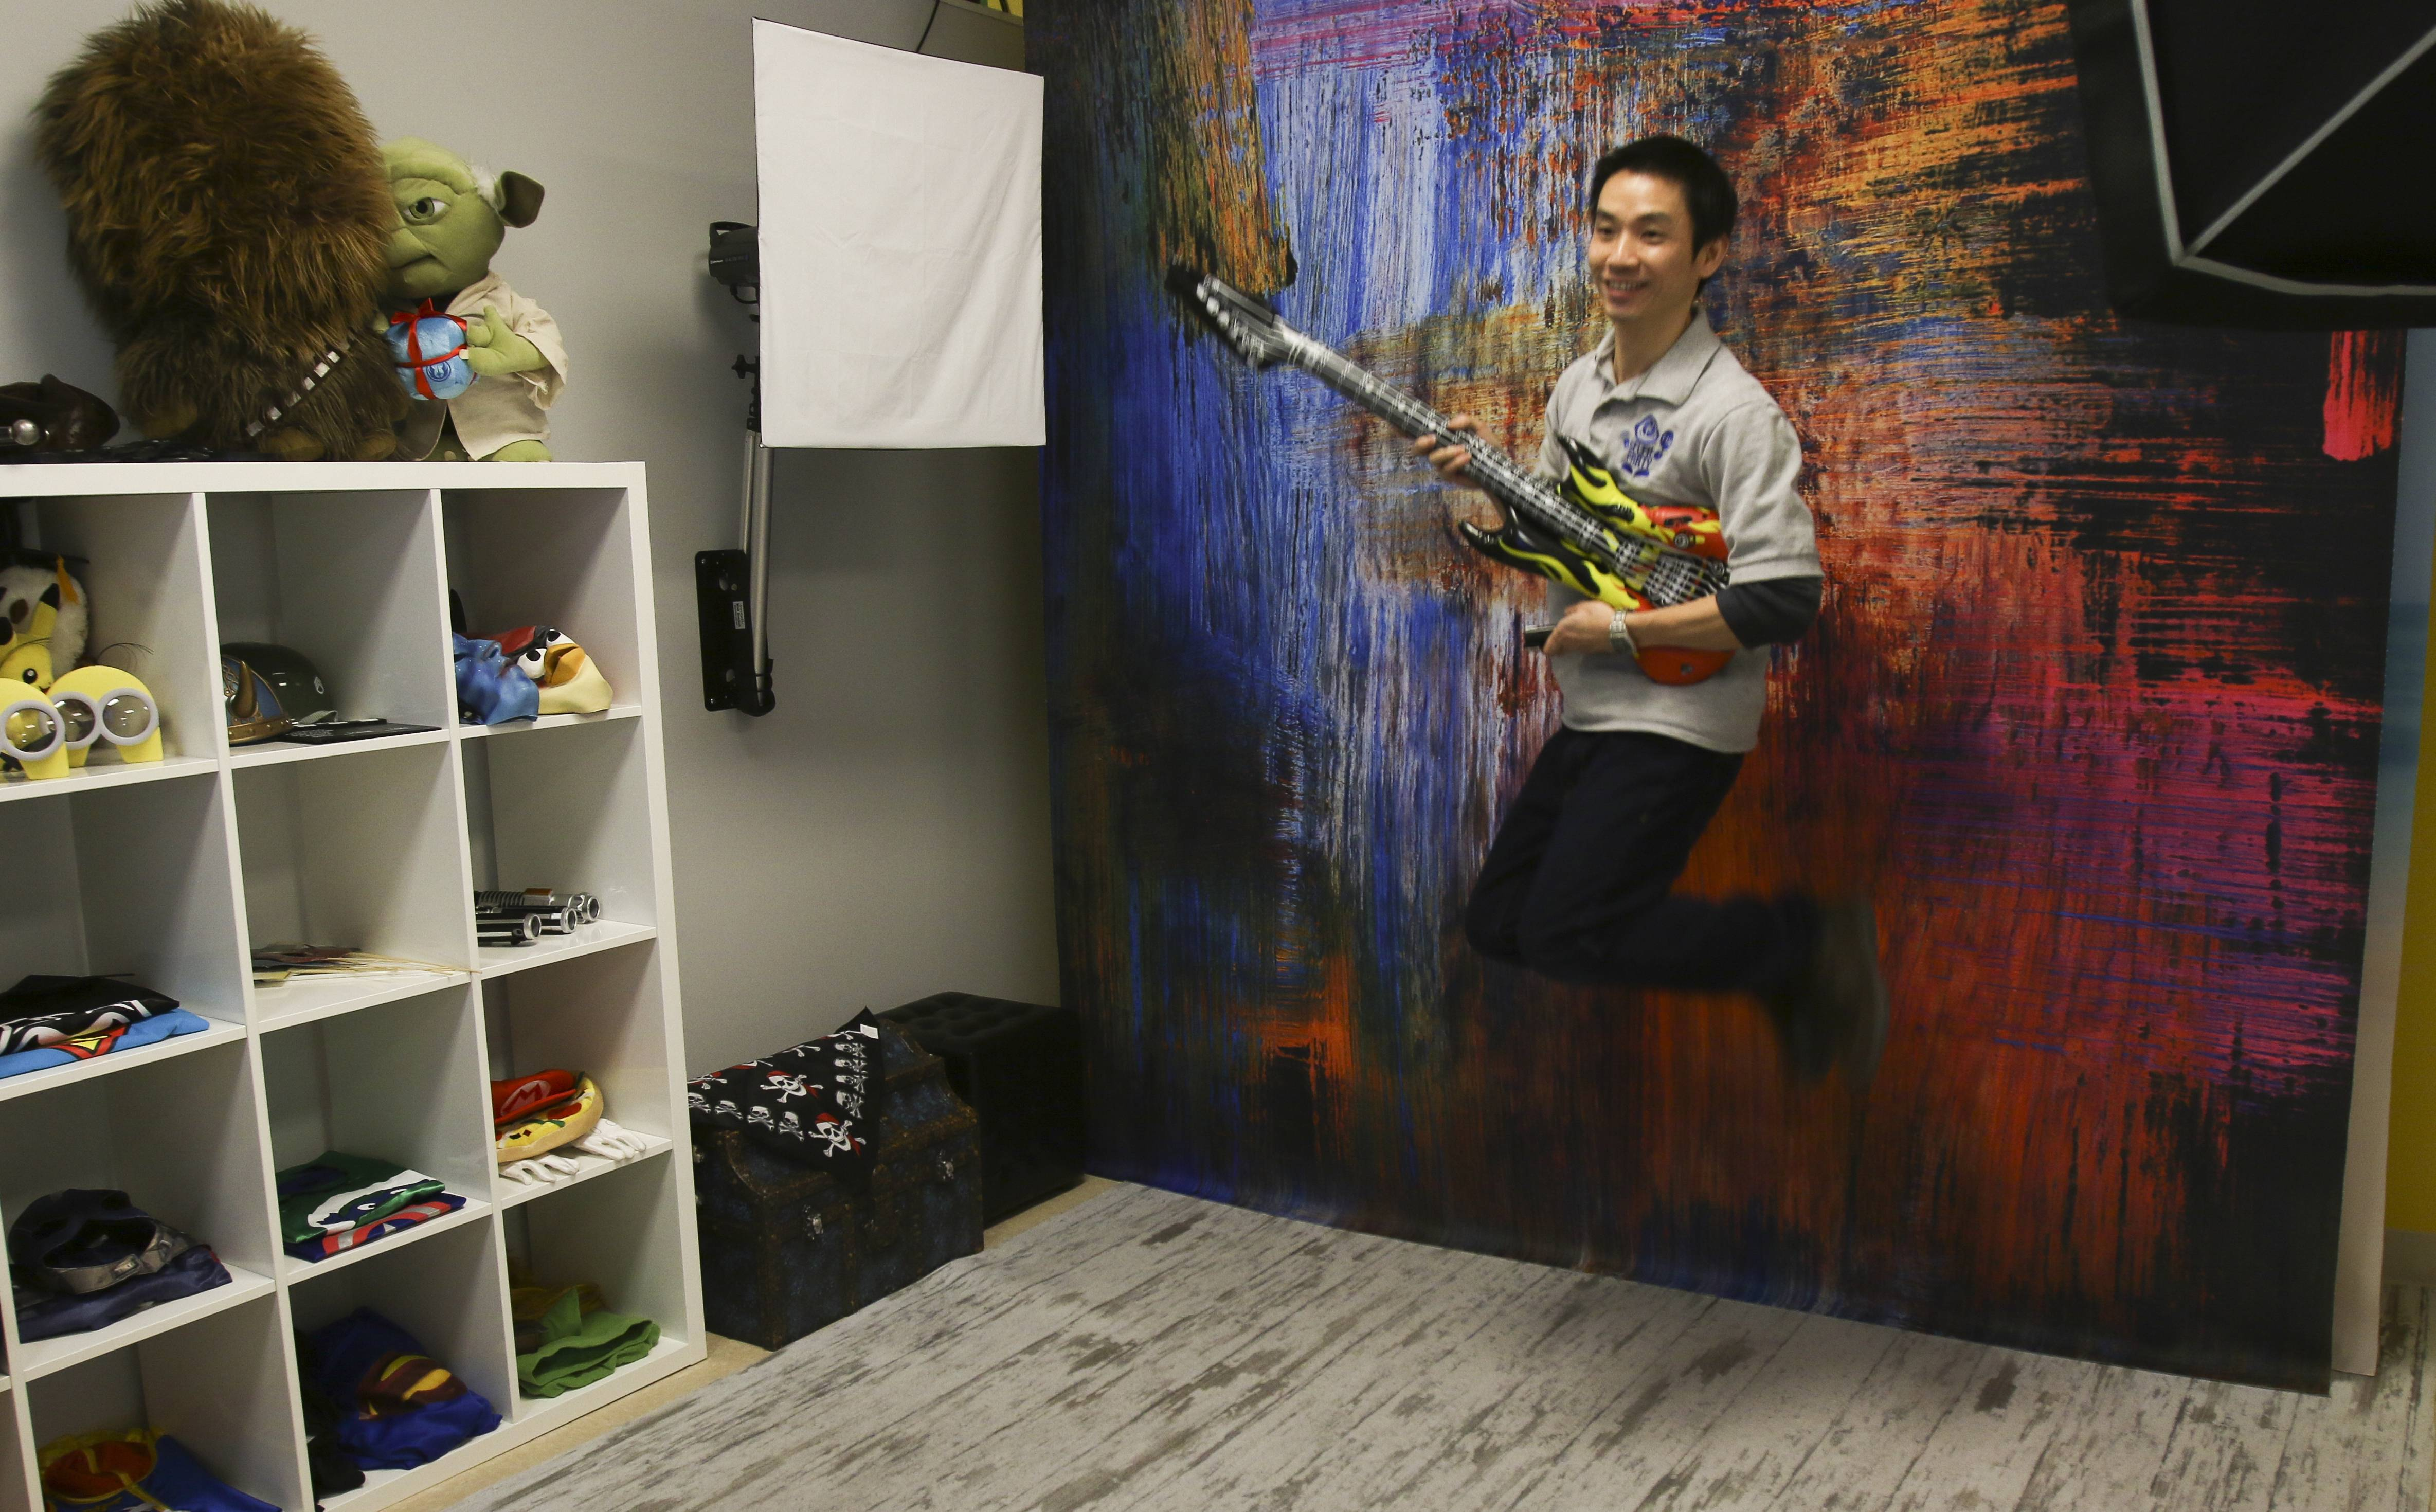 Joseph Man, owner of the new Selfie Party Fun selfie studio in Naperville, says his business brings fun to studio photography by giving control of the background, props and when to snap the photo to the customer.